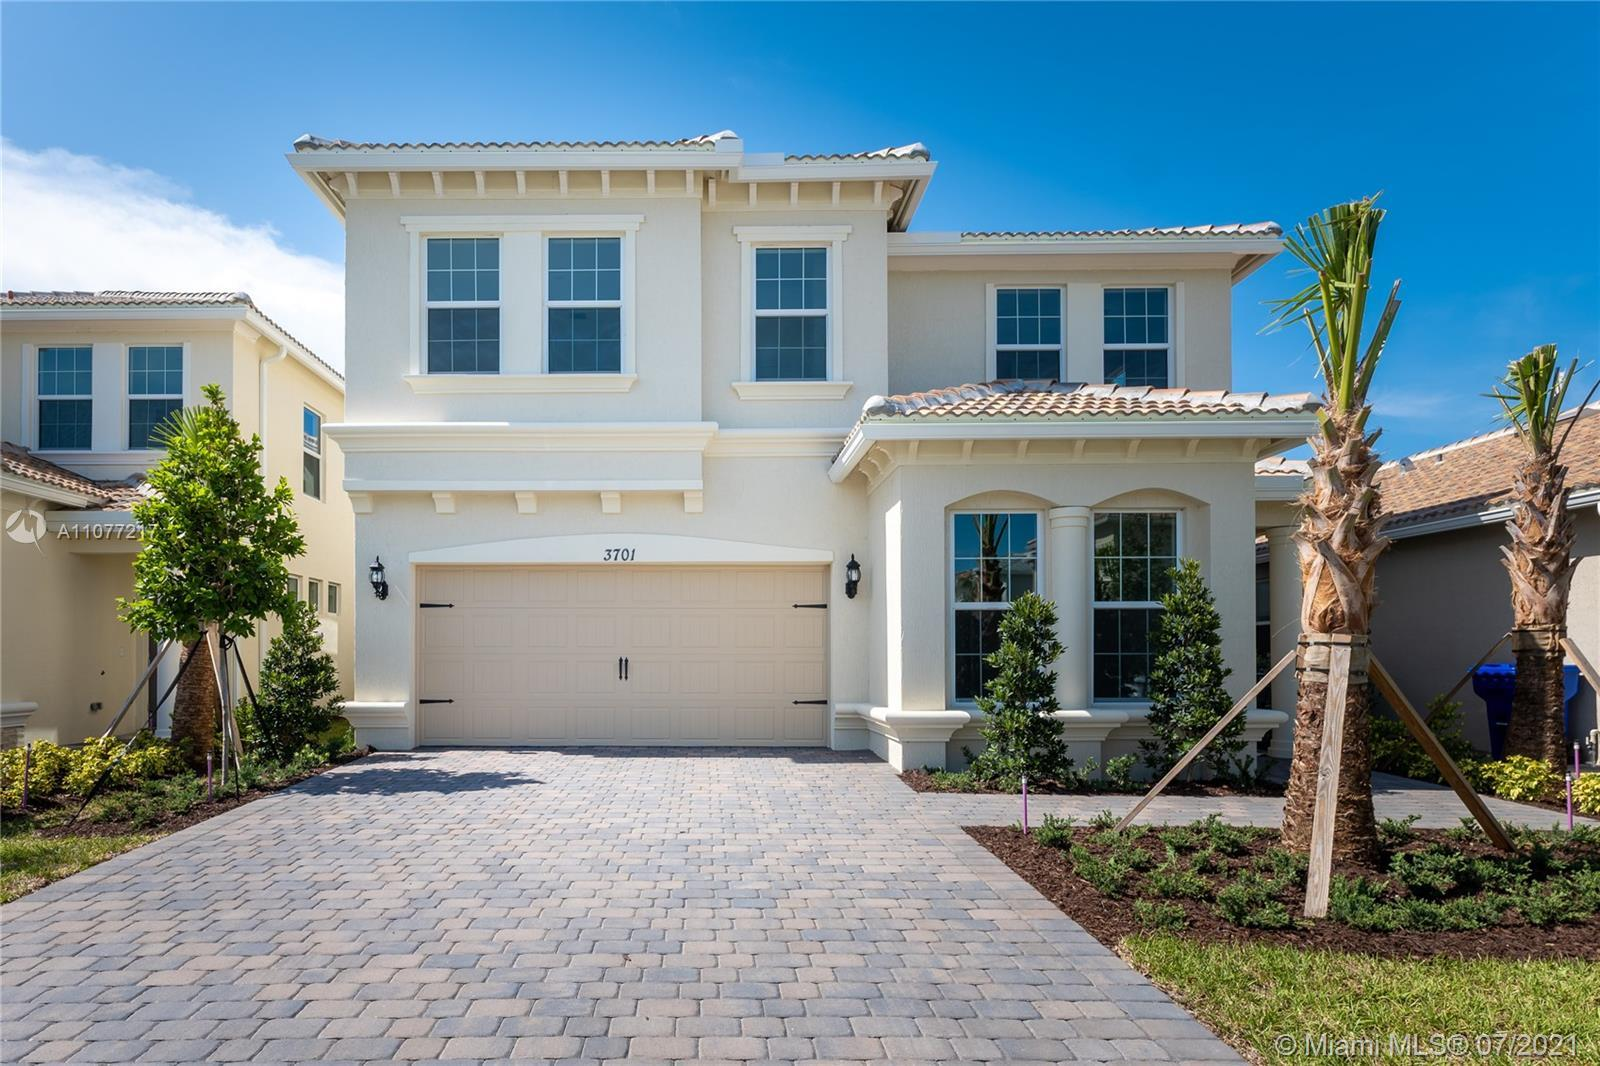 Impeccable 2021 construction home in Hollywood! Located in a desirable gated community, this two-sto